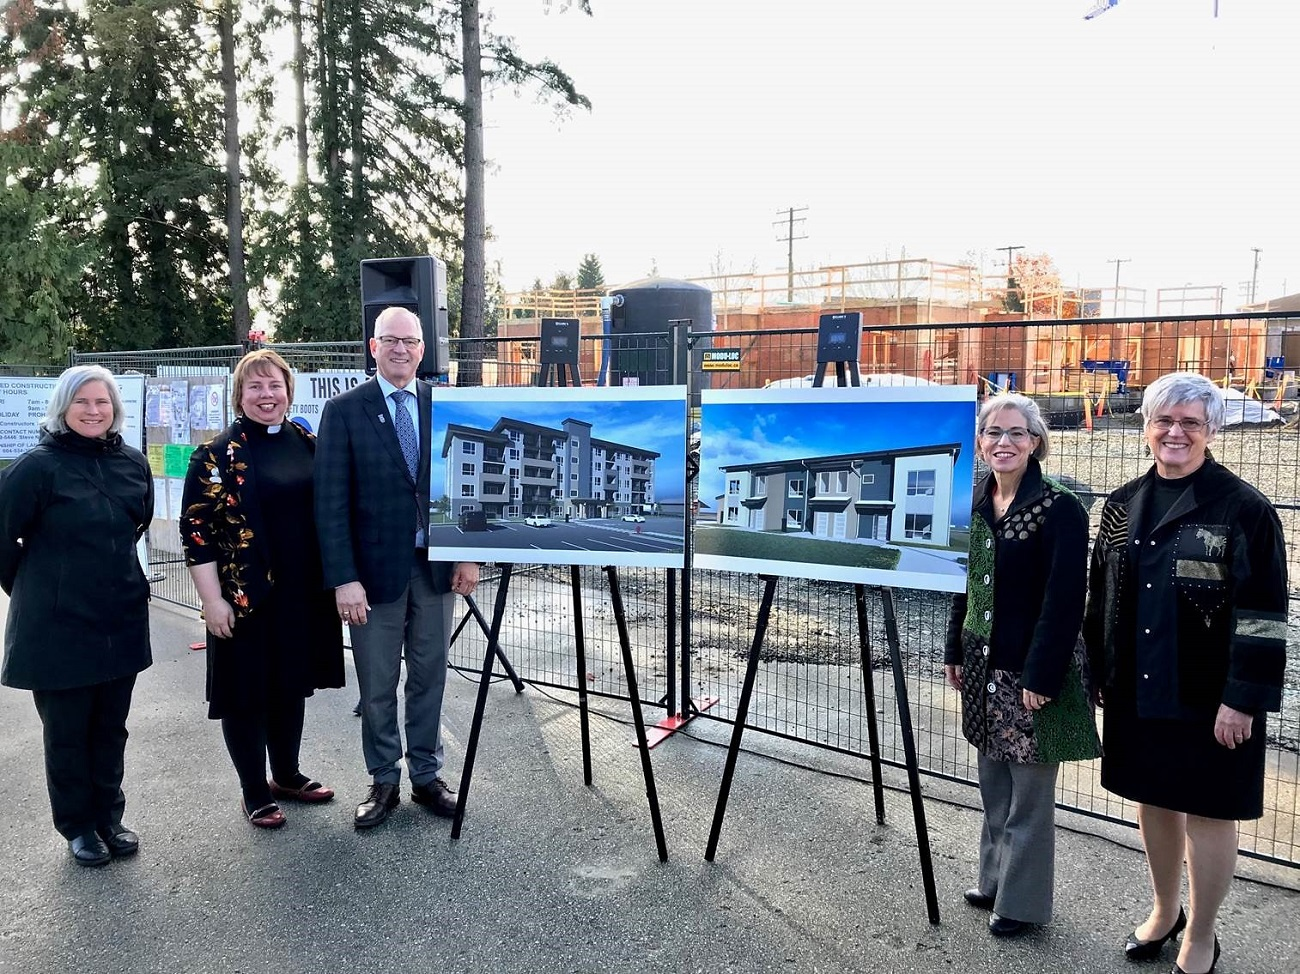 Affordable homes for seniors, families in Langley - Voiceonline.com